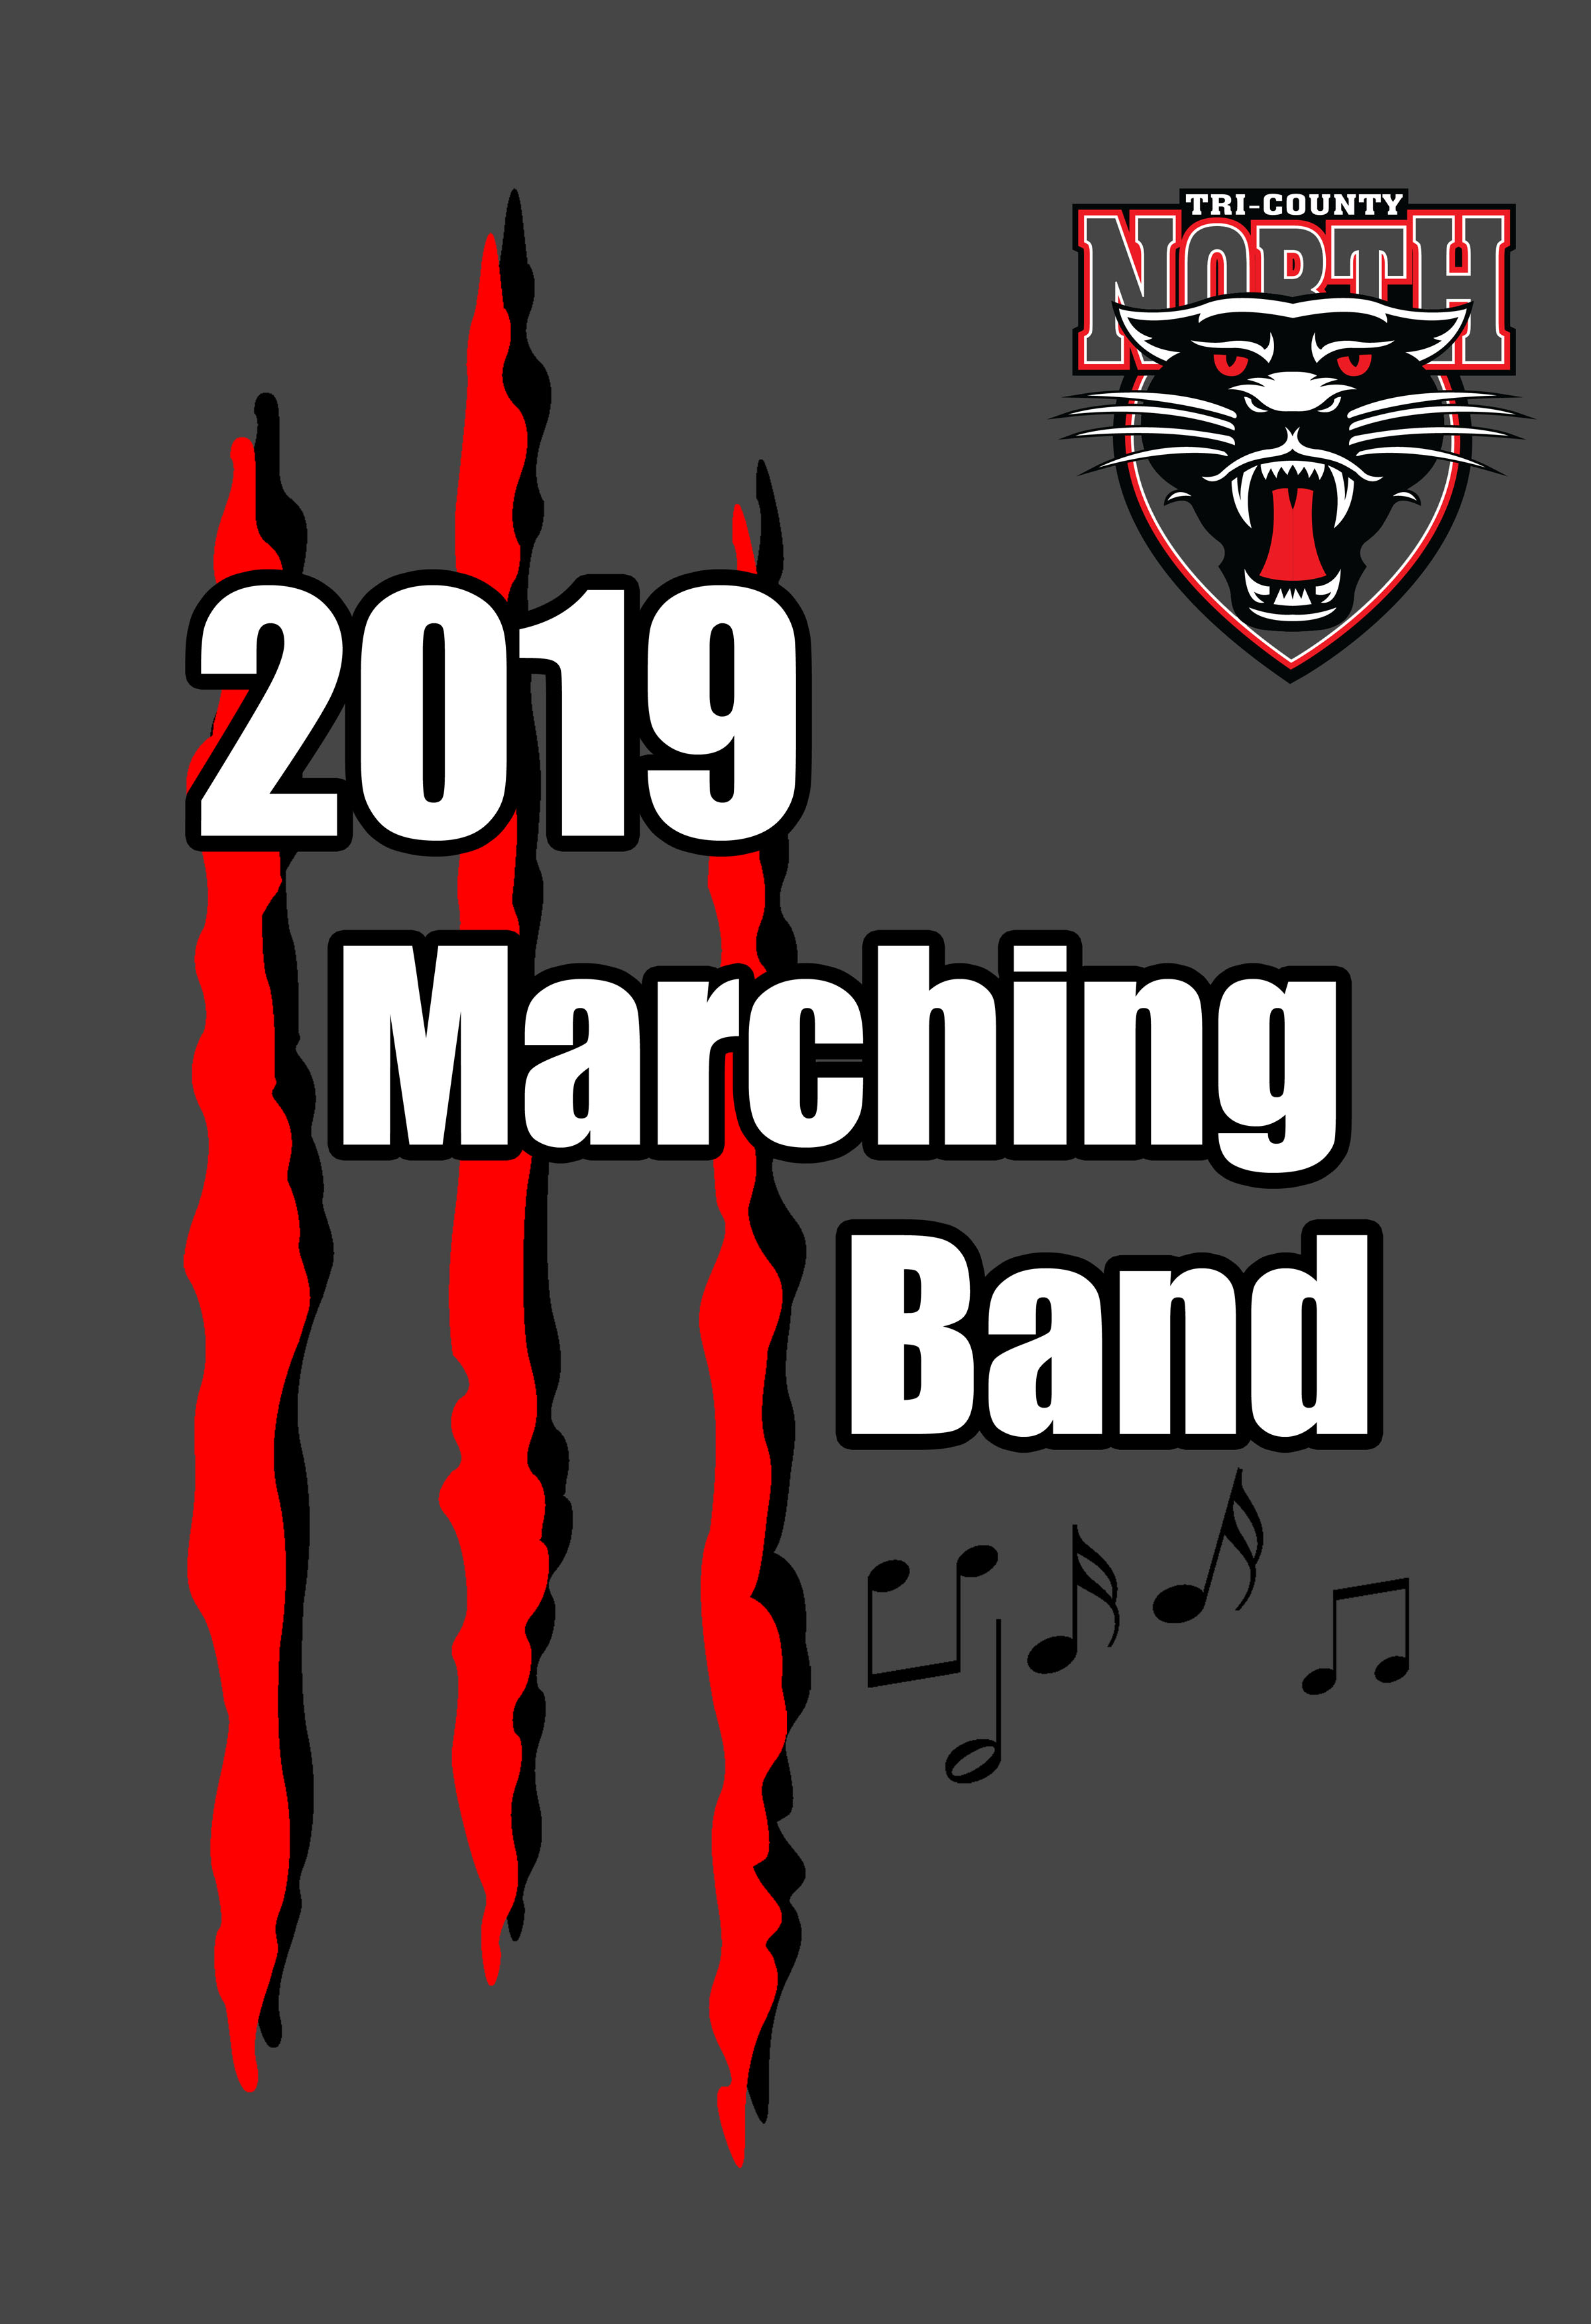 2019TCN BAND FRONT 2019.jpg